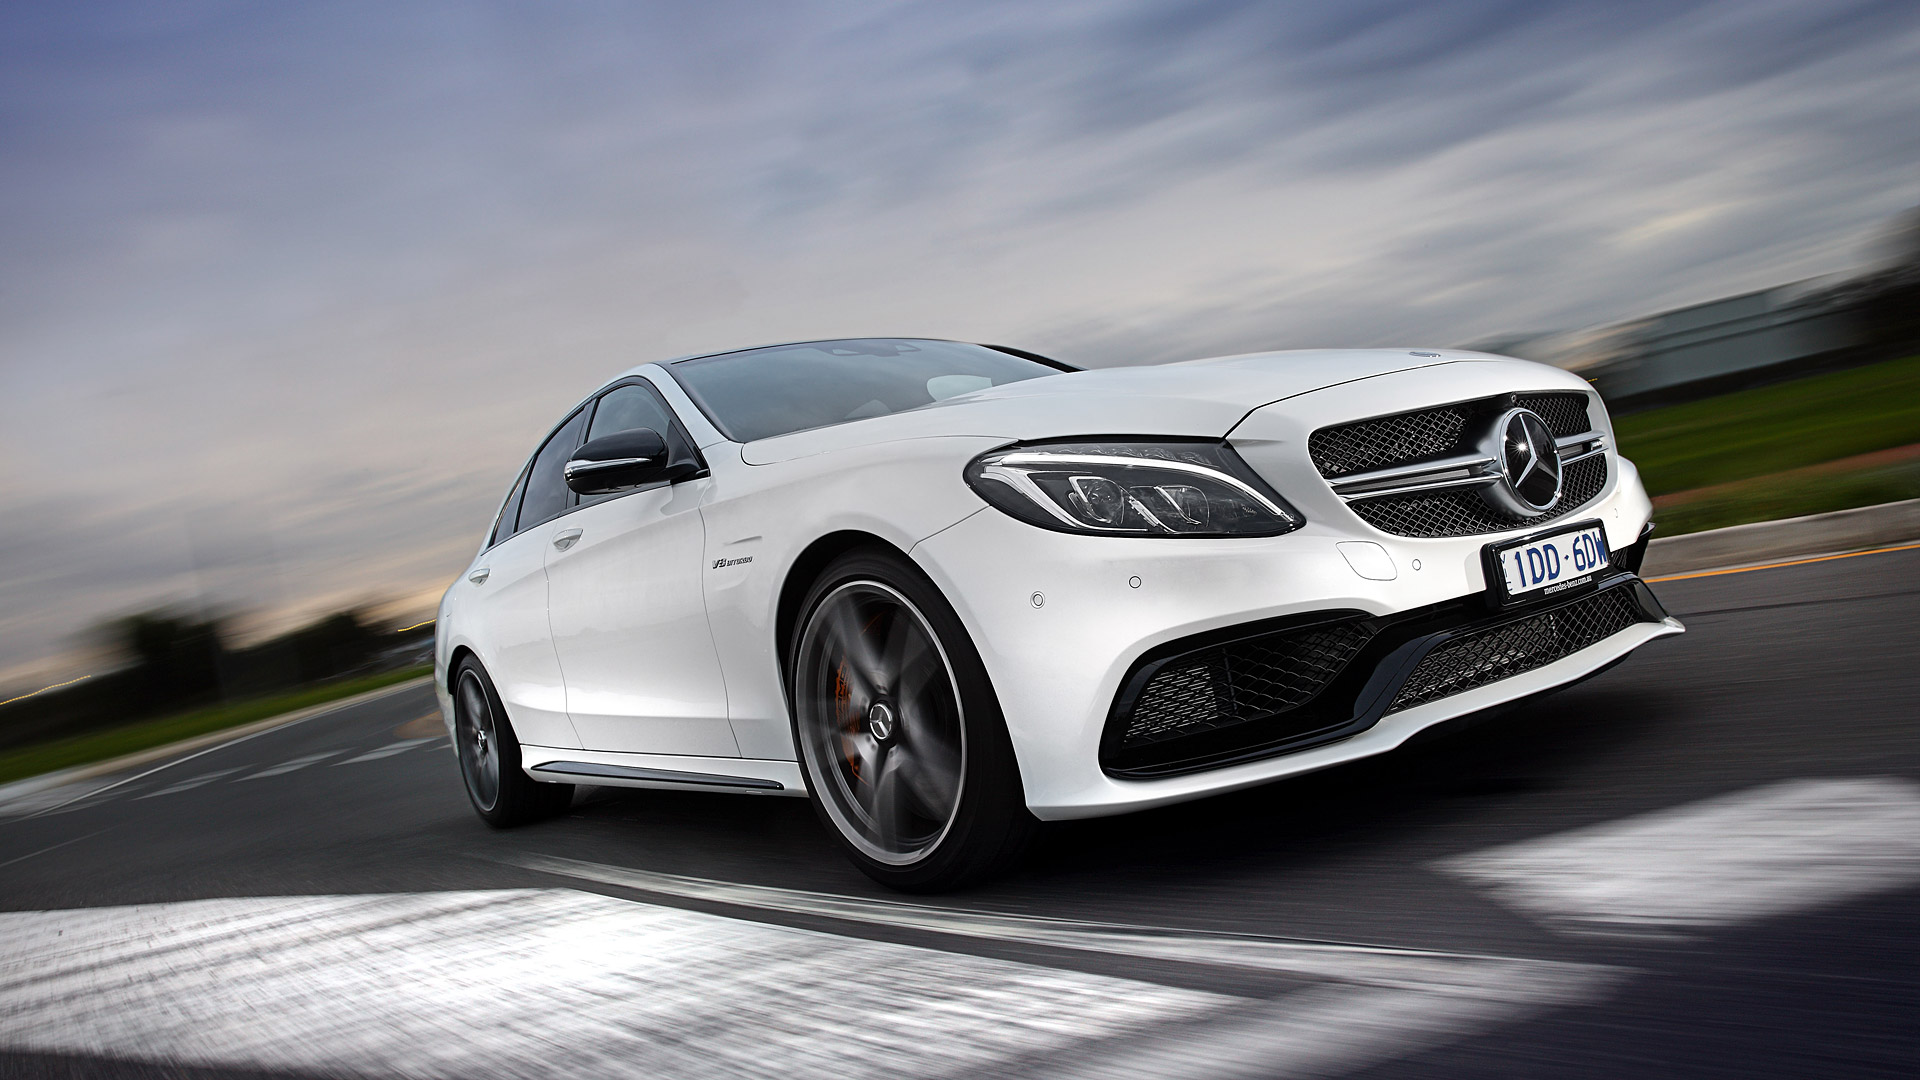 Mercedes Benz C43 Amg Wallpaper Hd Mercedes Amg C63 1920x1080 Download Hd Wallpaper Wallpapertip